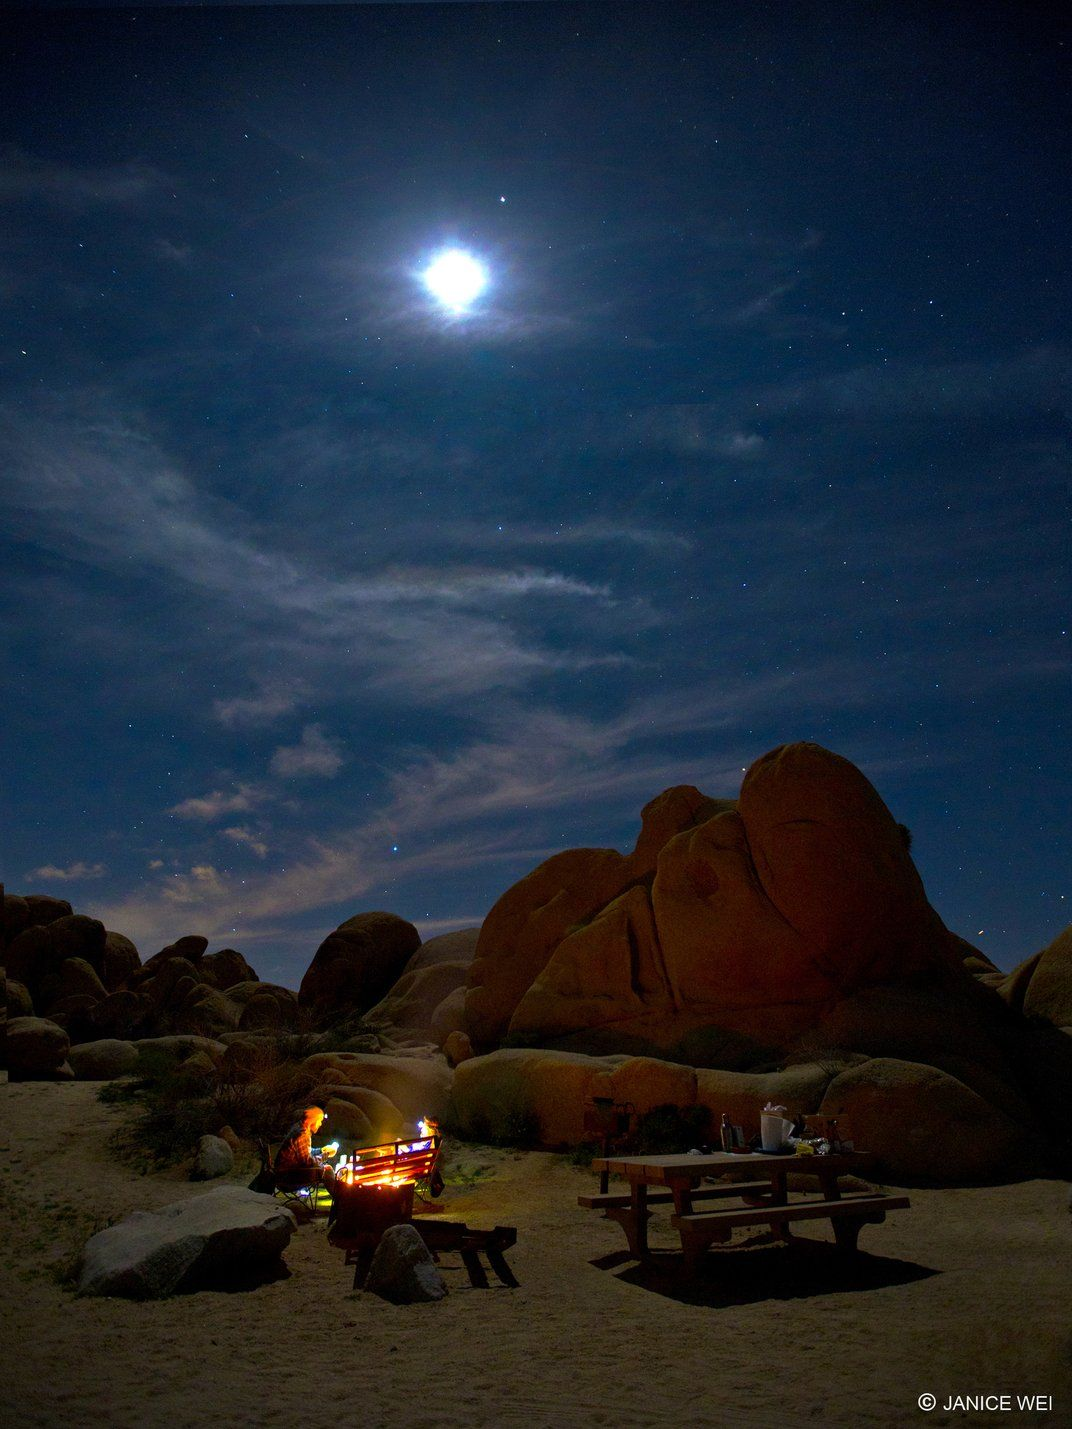 I can recall my happiest moments camping, as in this photo by Janice Wei, at Joshua Tree National Park, an amazing experience. All camp sites are next to the beautiful rock formations. Read more: http://www.smithsonianmag.com/photocontest/detail/american-experience/camp-fire-under-the-moonlight/#UR6SvJJkO7XkvF7z.99